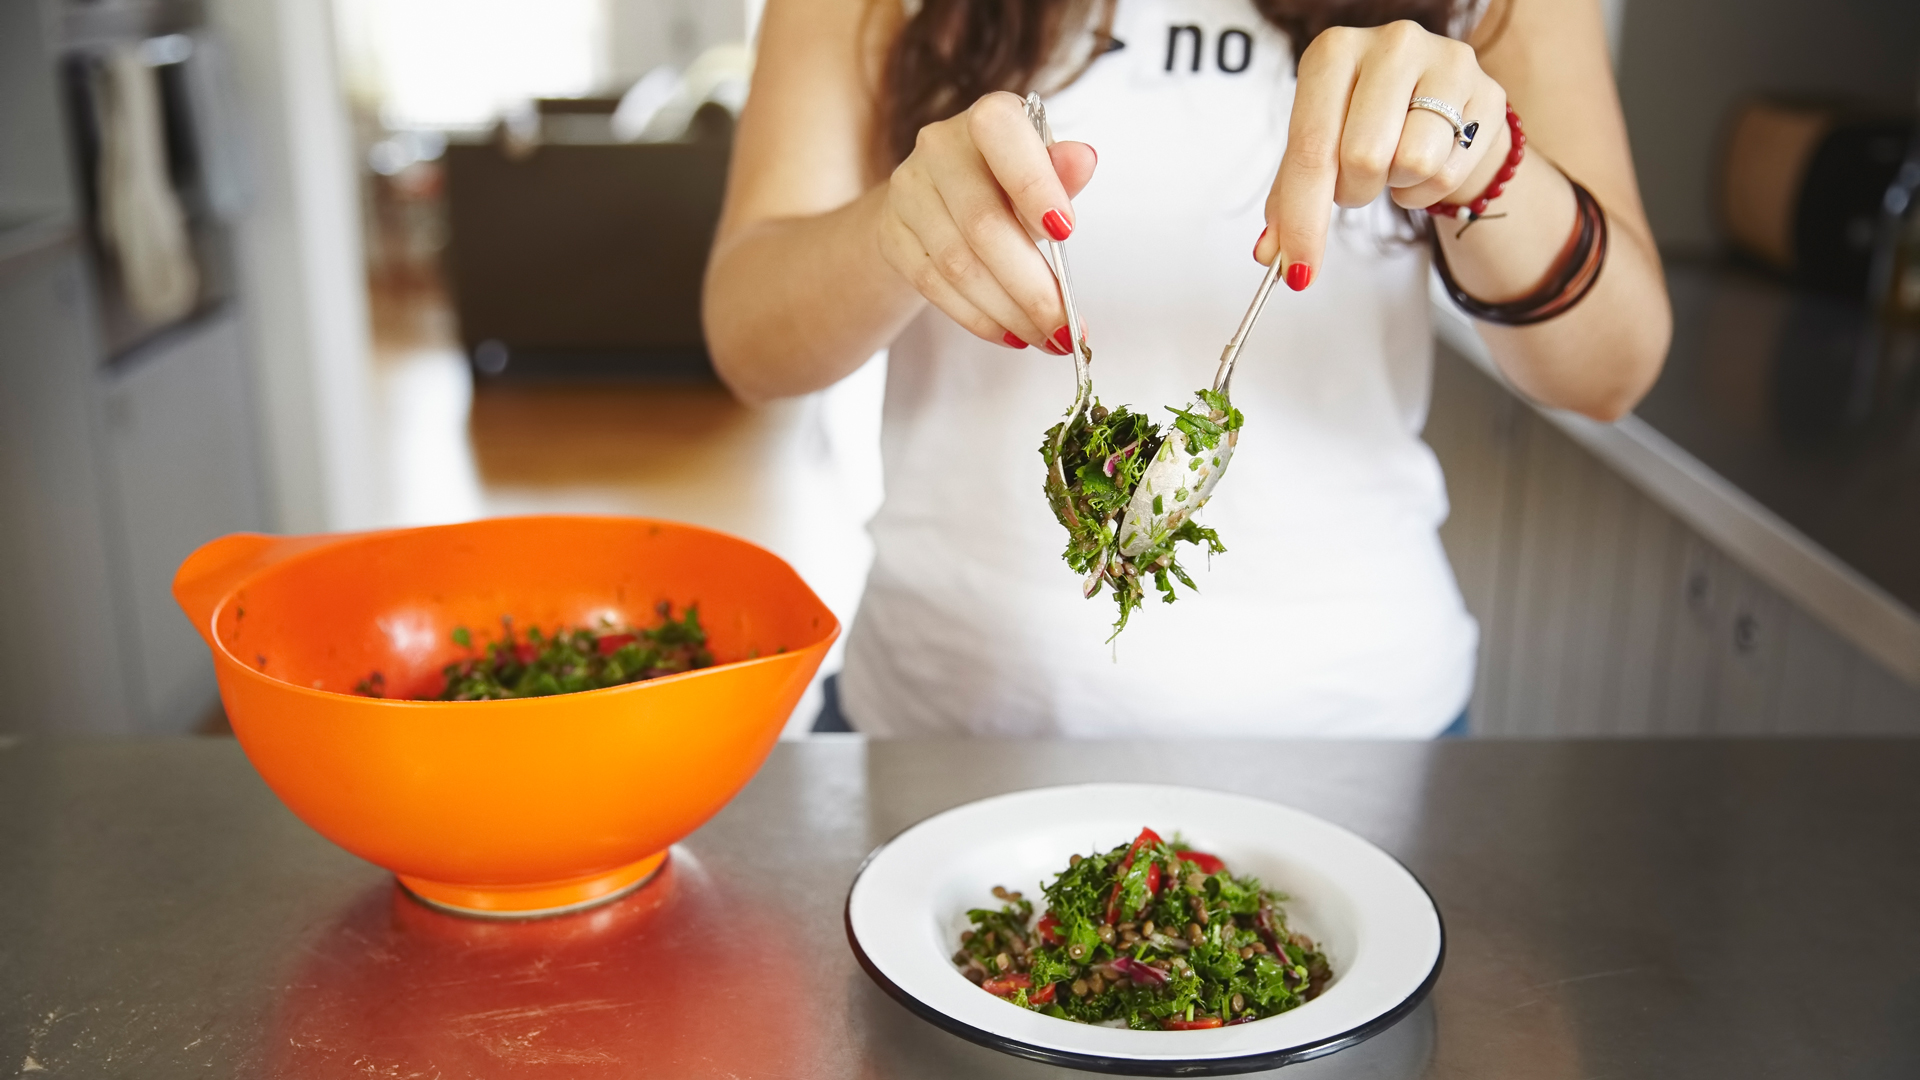 greenhopping-founder-catherine-cuello-serving-her-recipe-for-french-lentils-with-a-tonne-of-herbs-foodadit